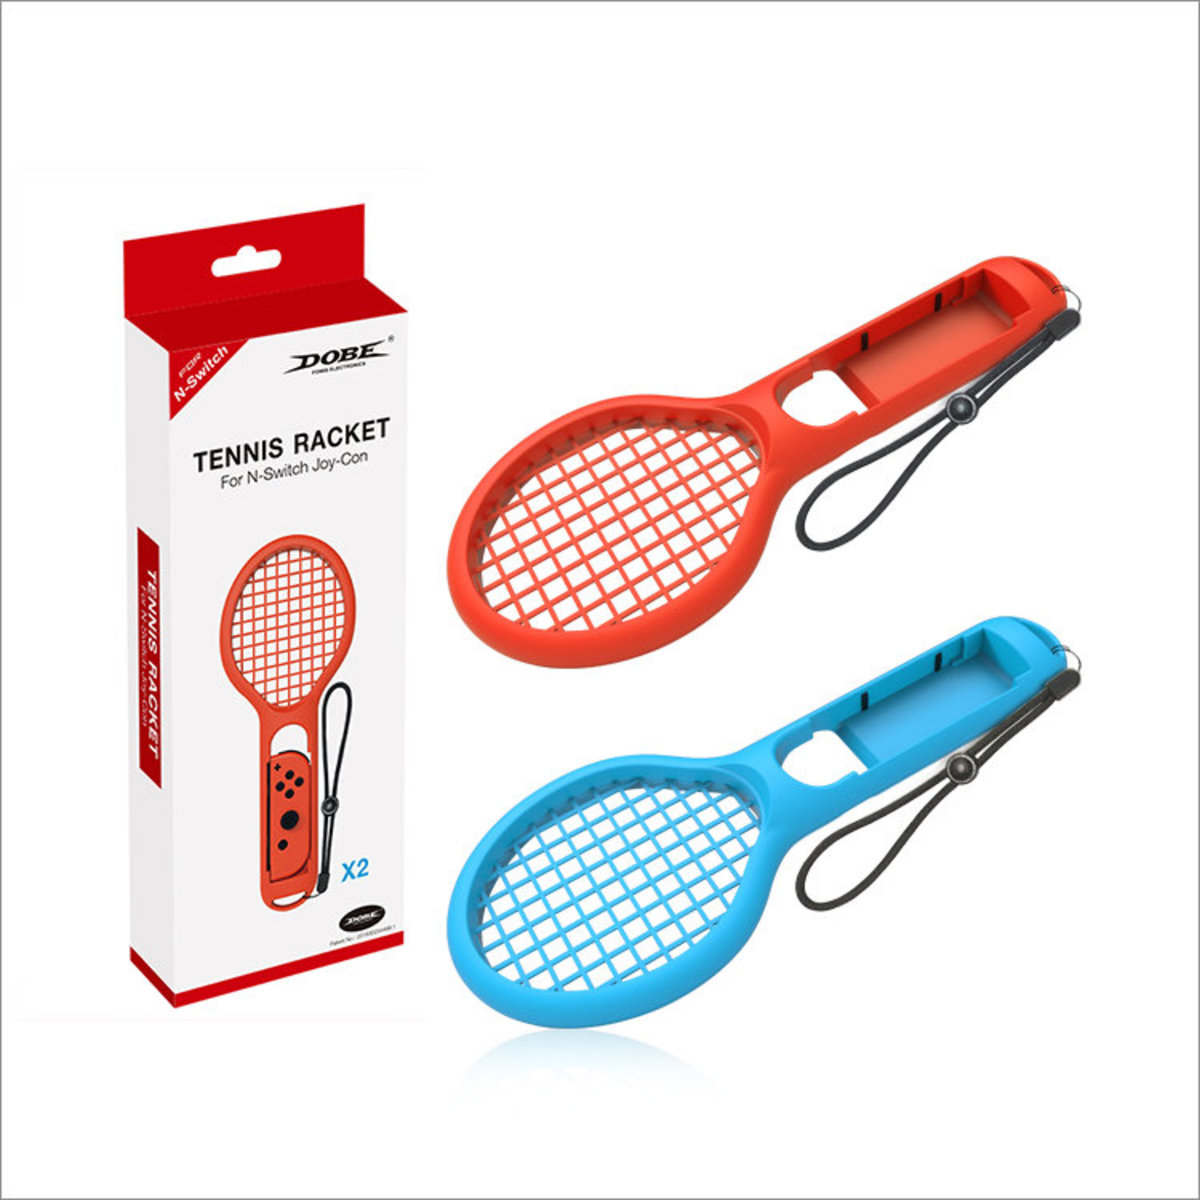 Joy-Con Tennis Racket For Nintendo Switch - Red & Blue